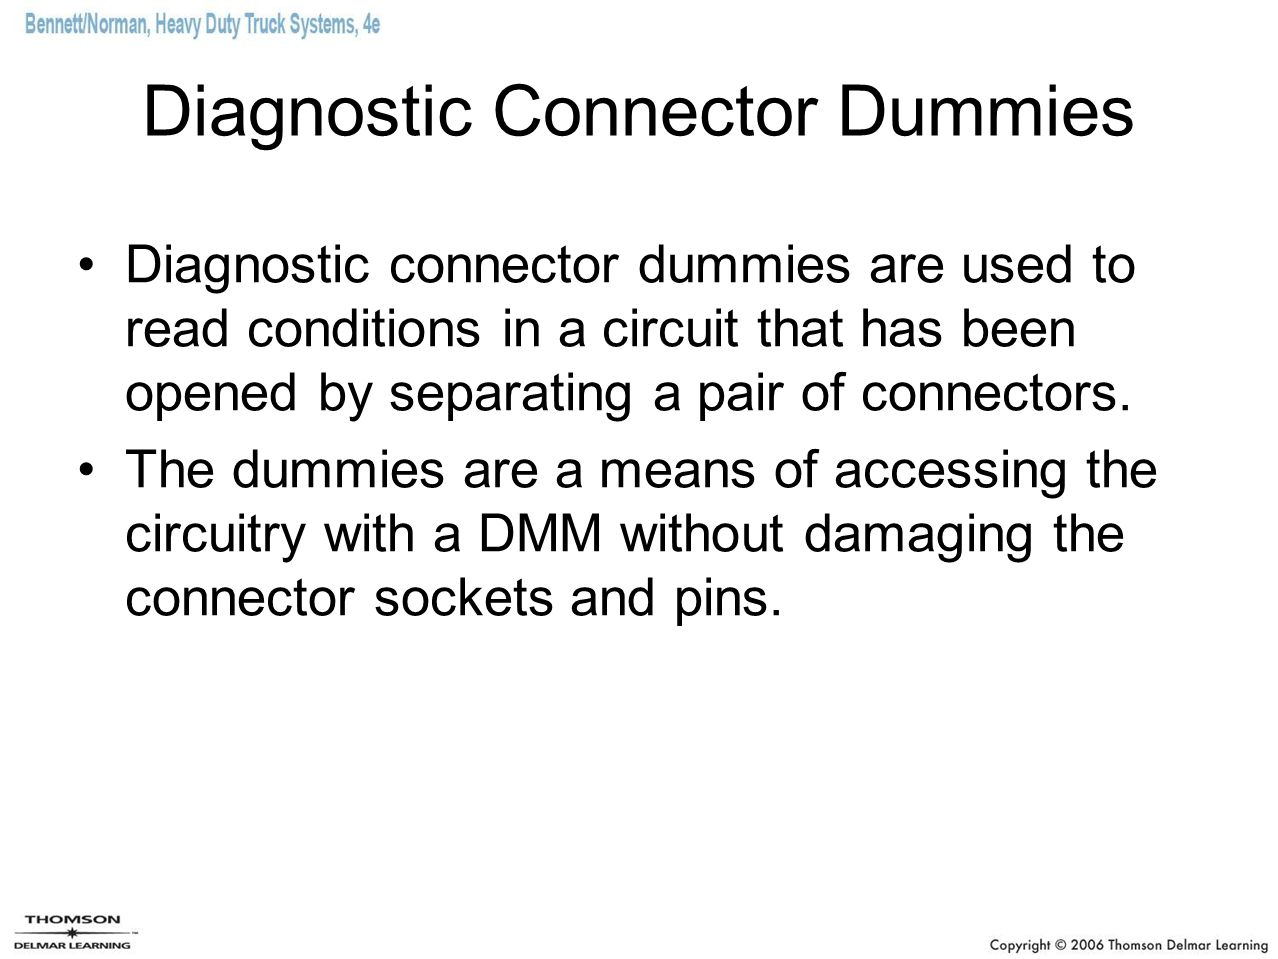 Diagnostic Connector Dummies